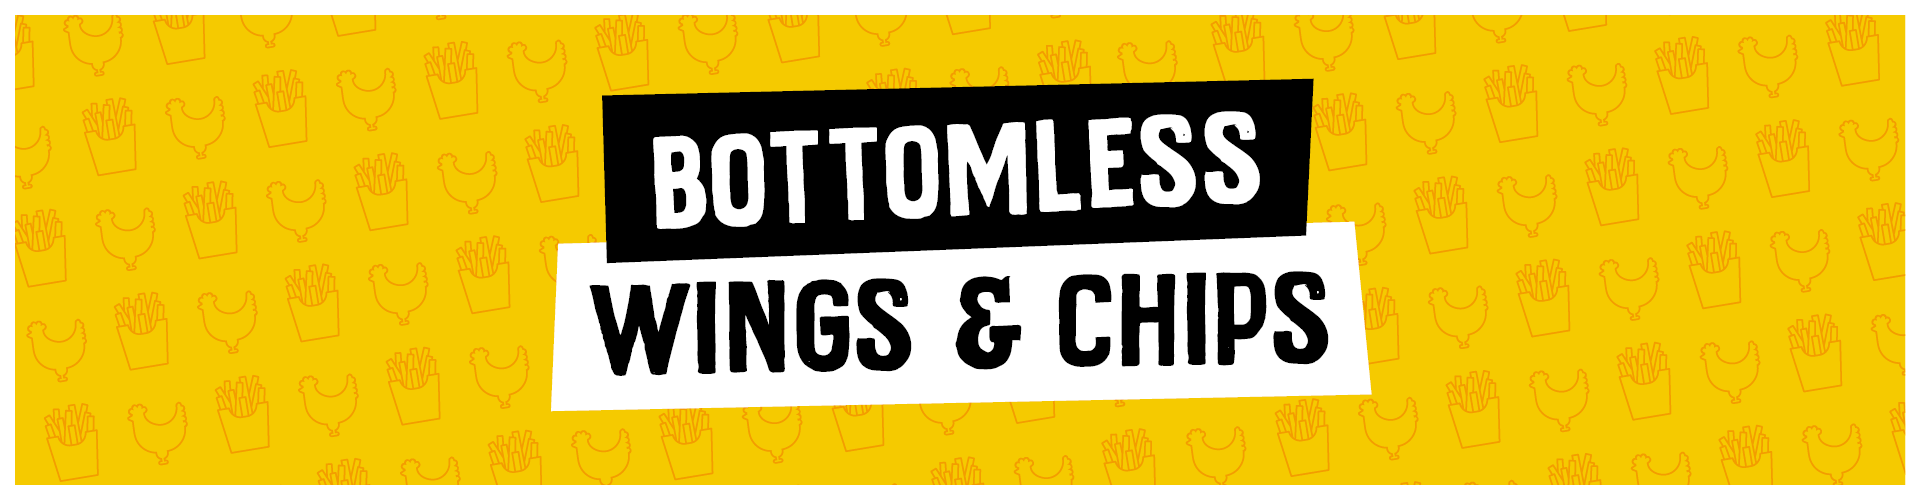 Bottomless Wings & Chips